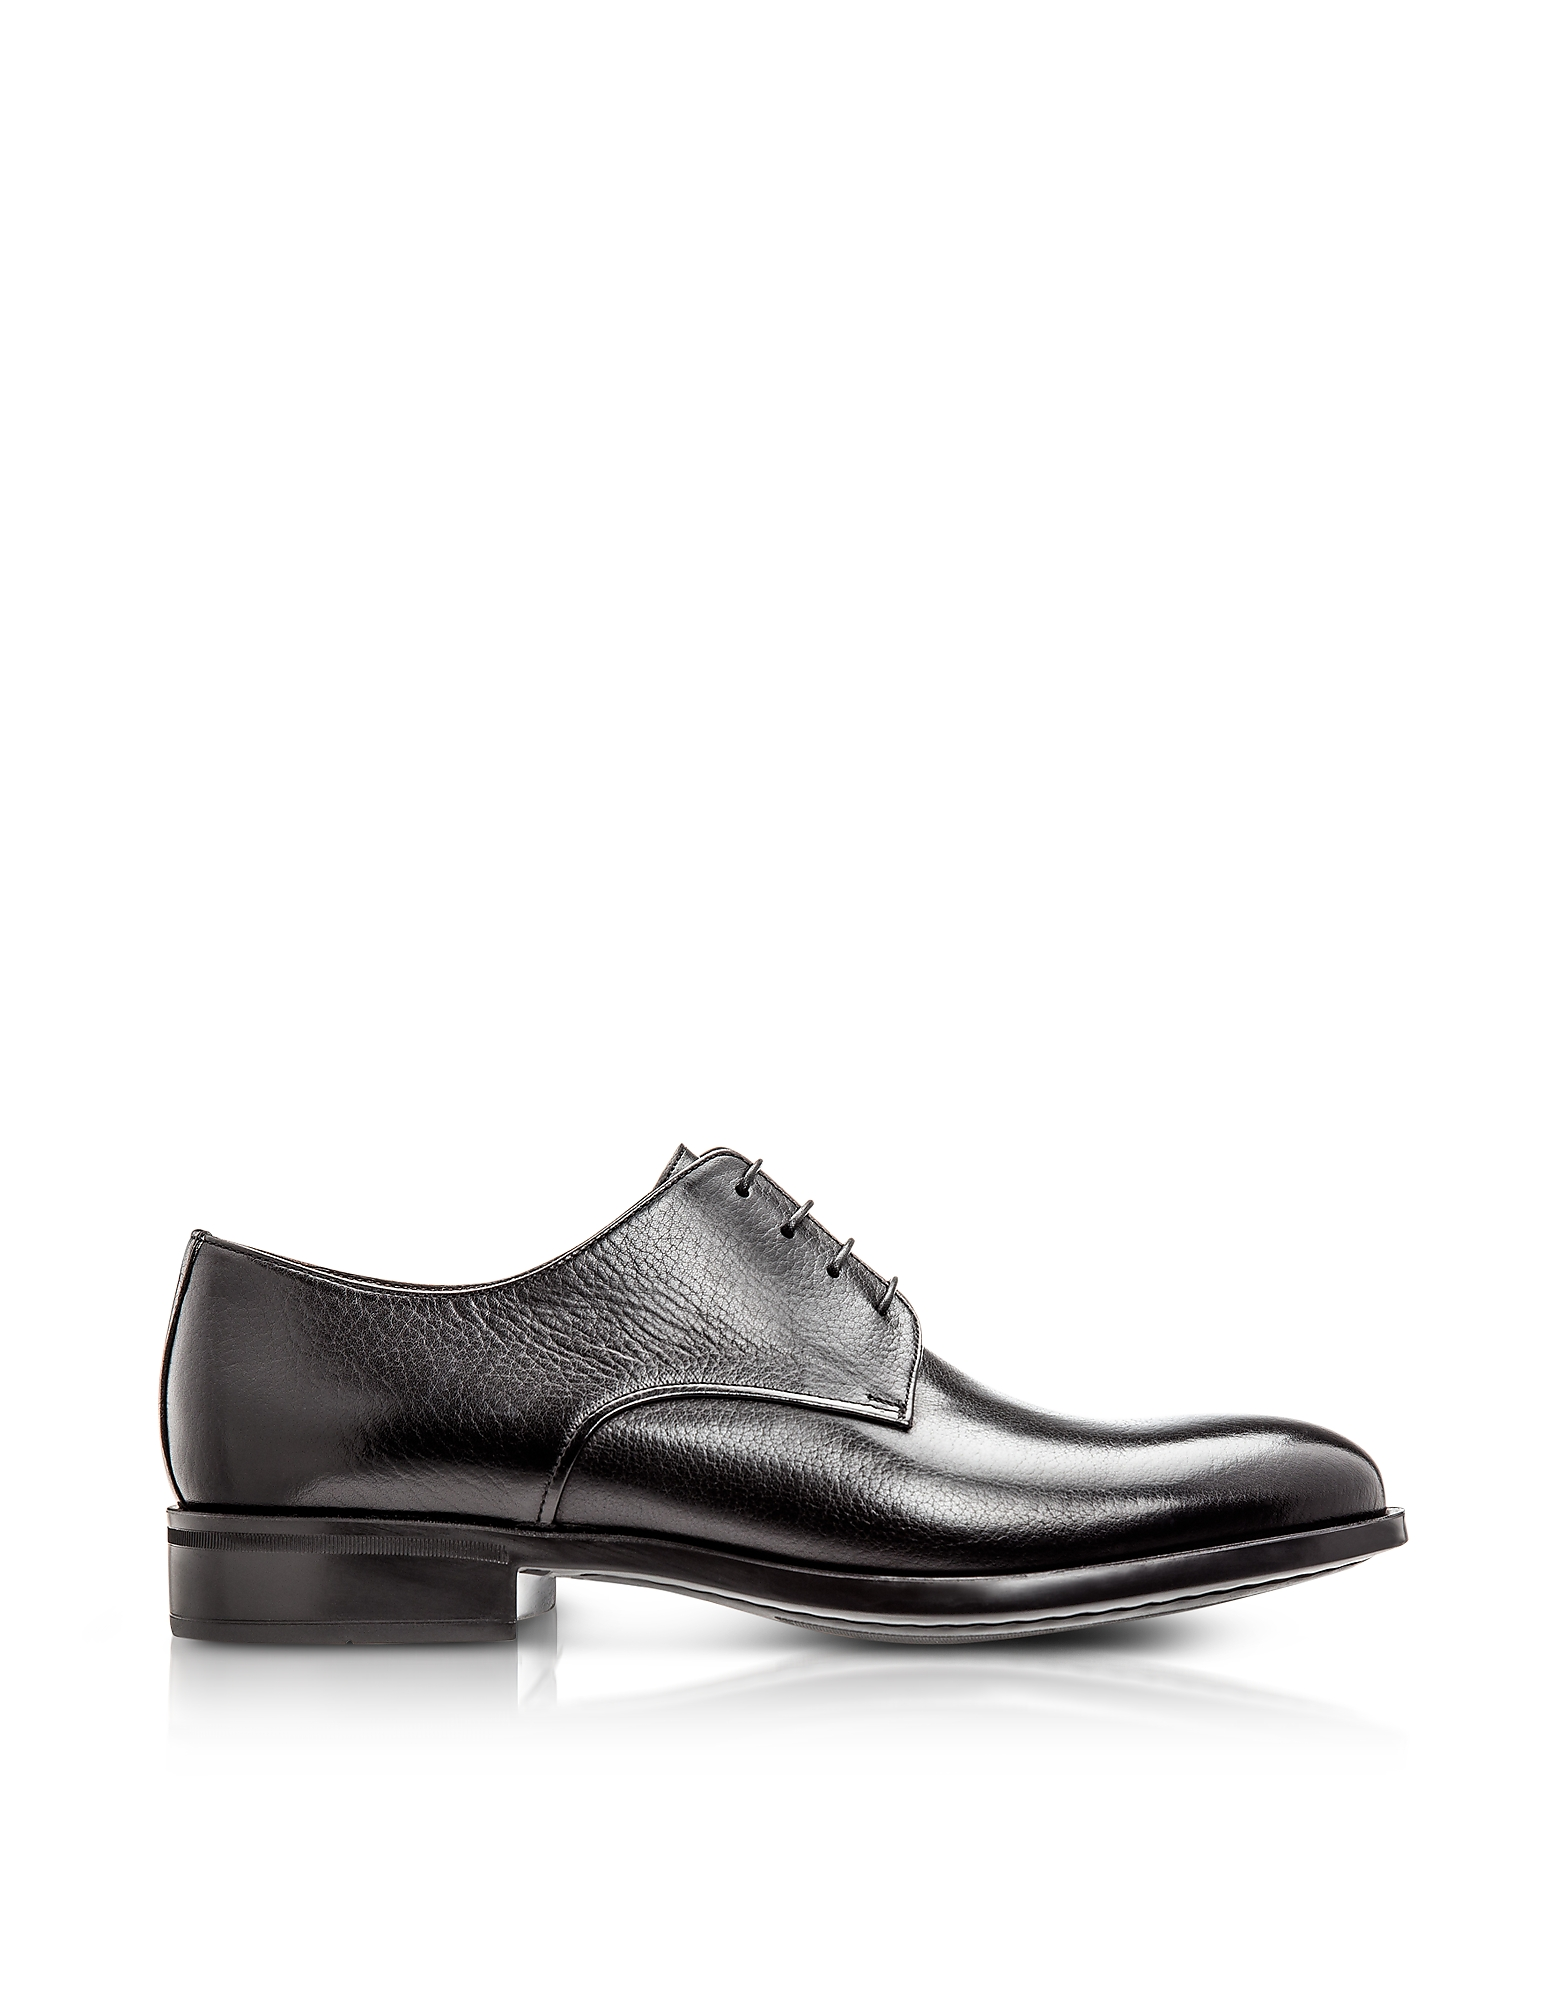 Moreschi Designer Shoes, Cork Black M Buffalo Leather Derby Shoes